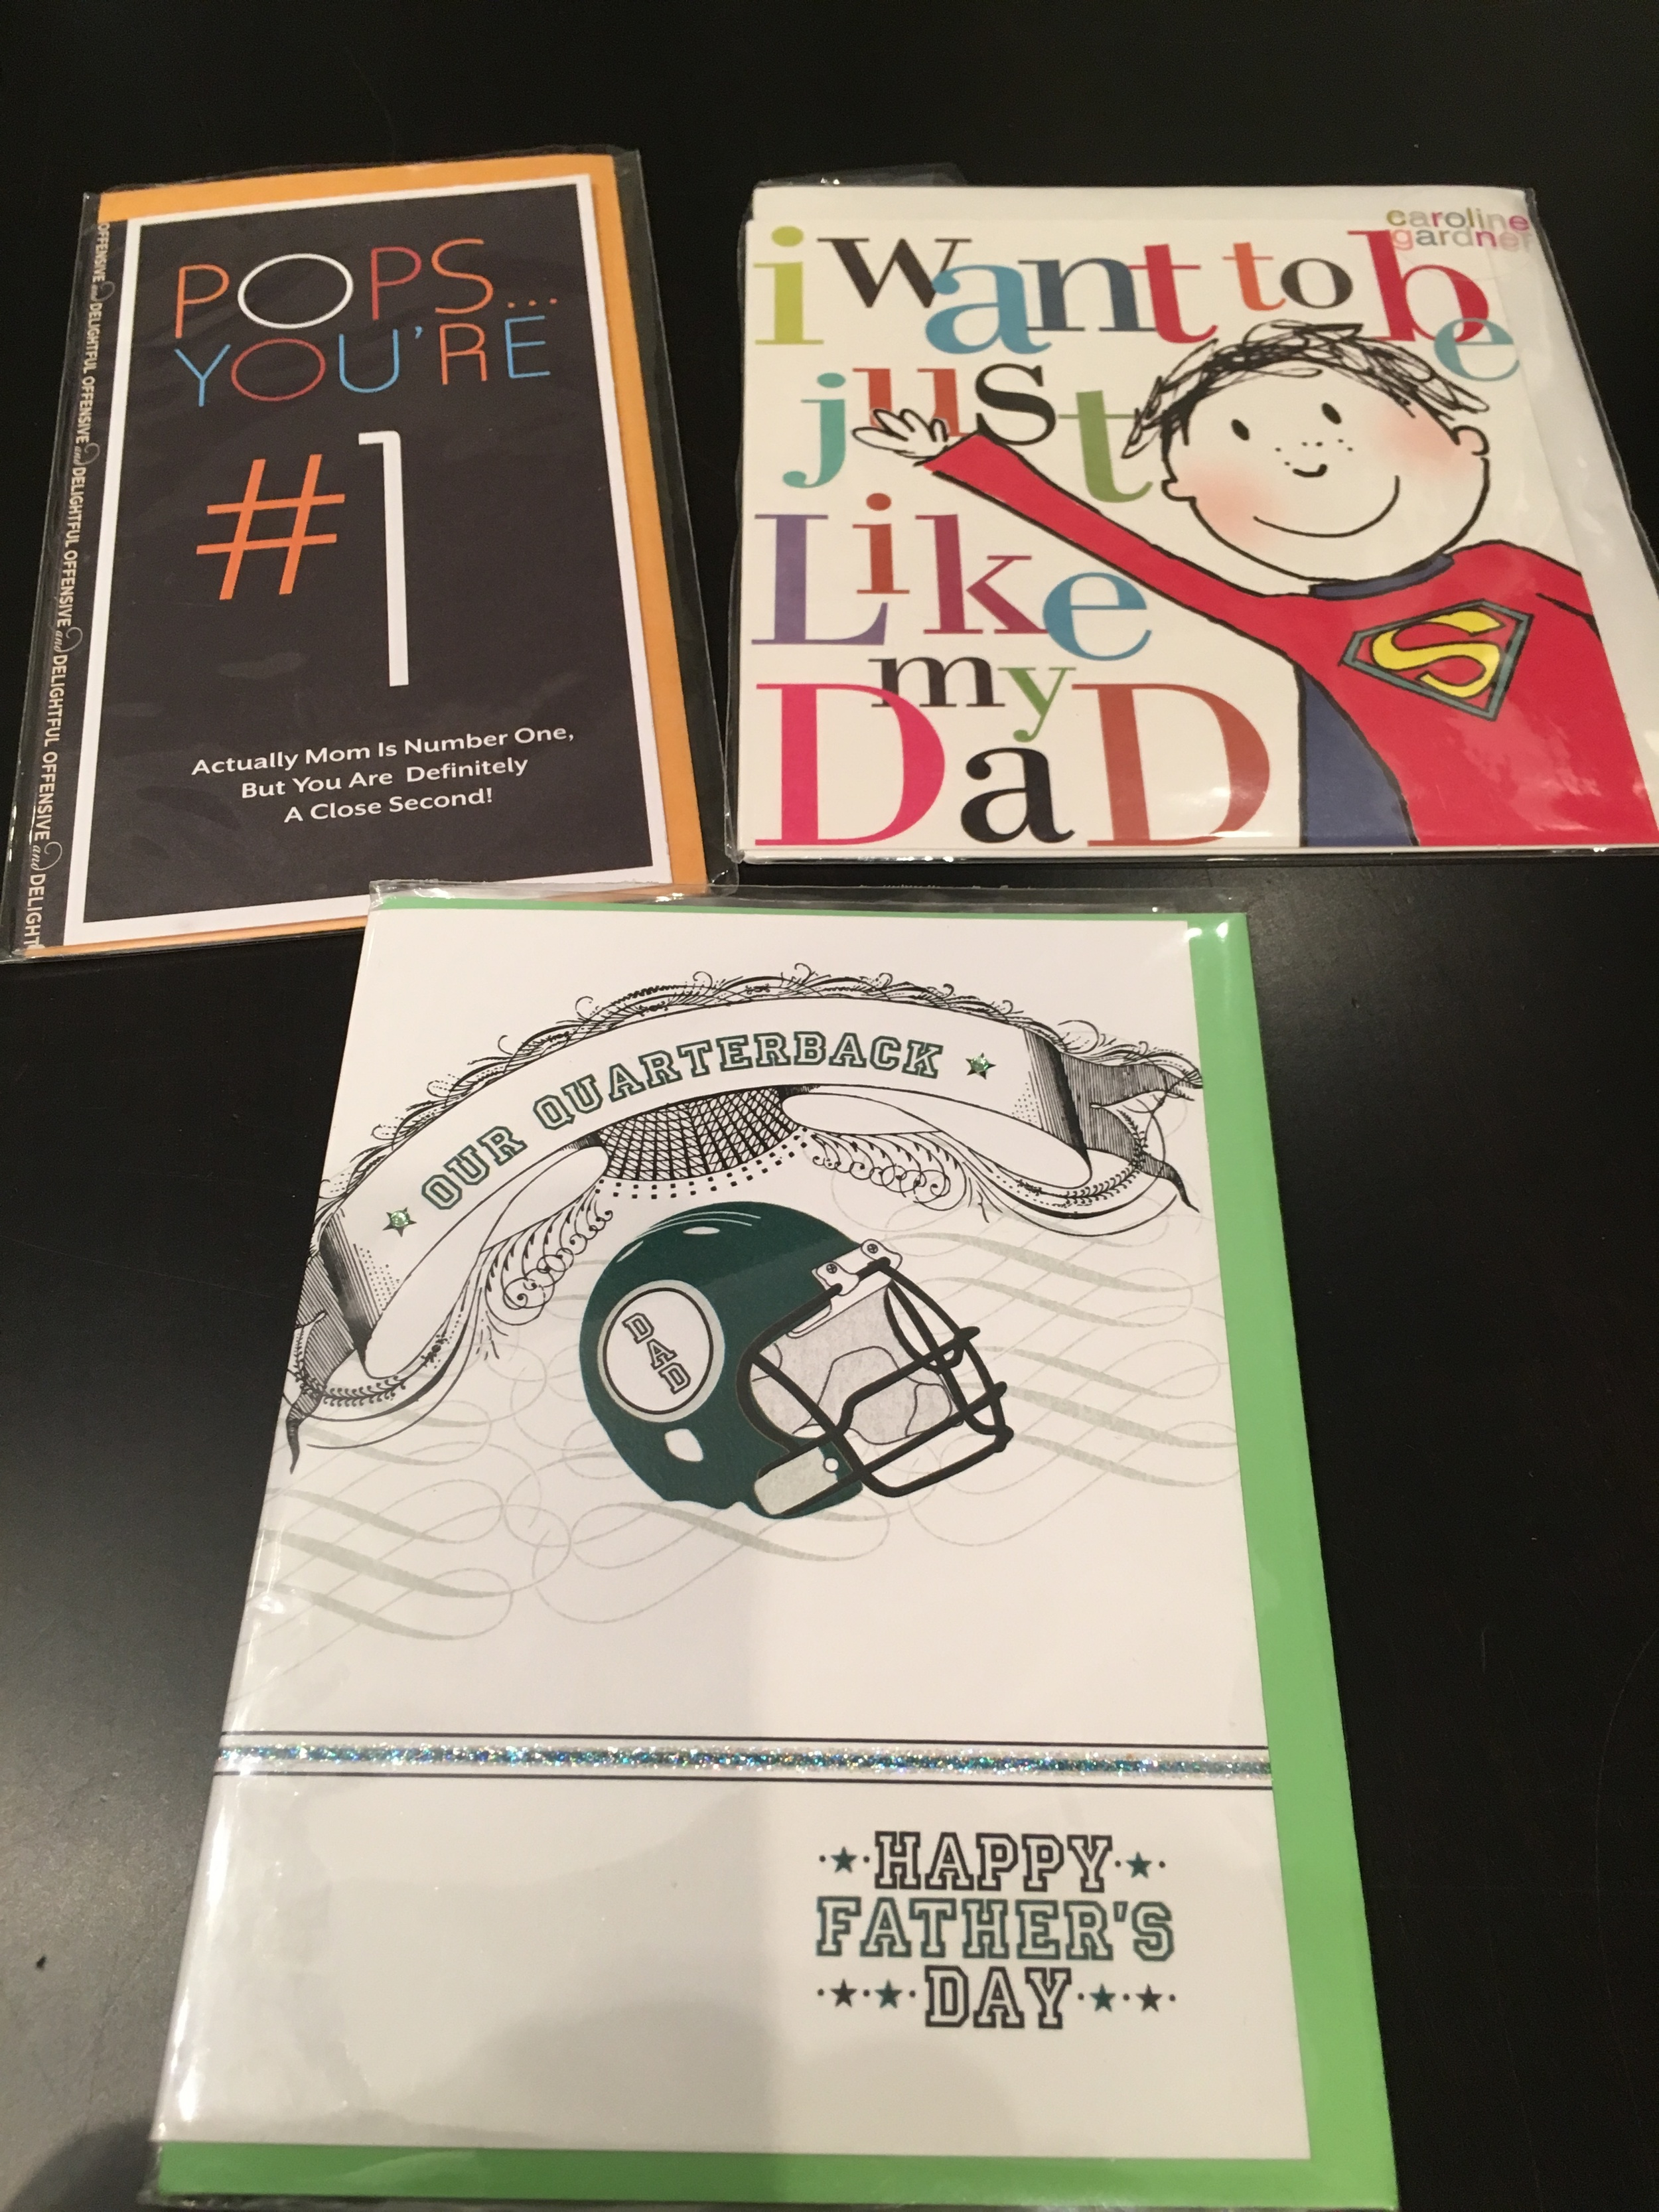 My son calls my hub Pops. My daughter writes stories about super heroes and he's my QB. Great prices for these cards.